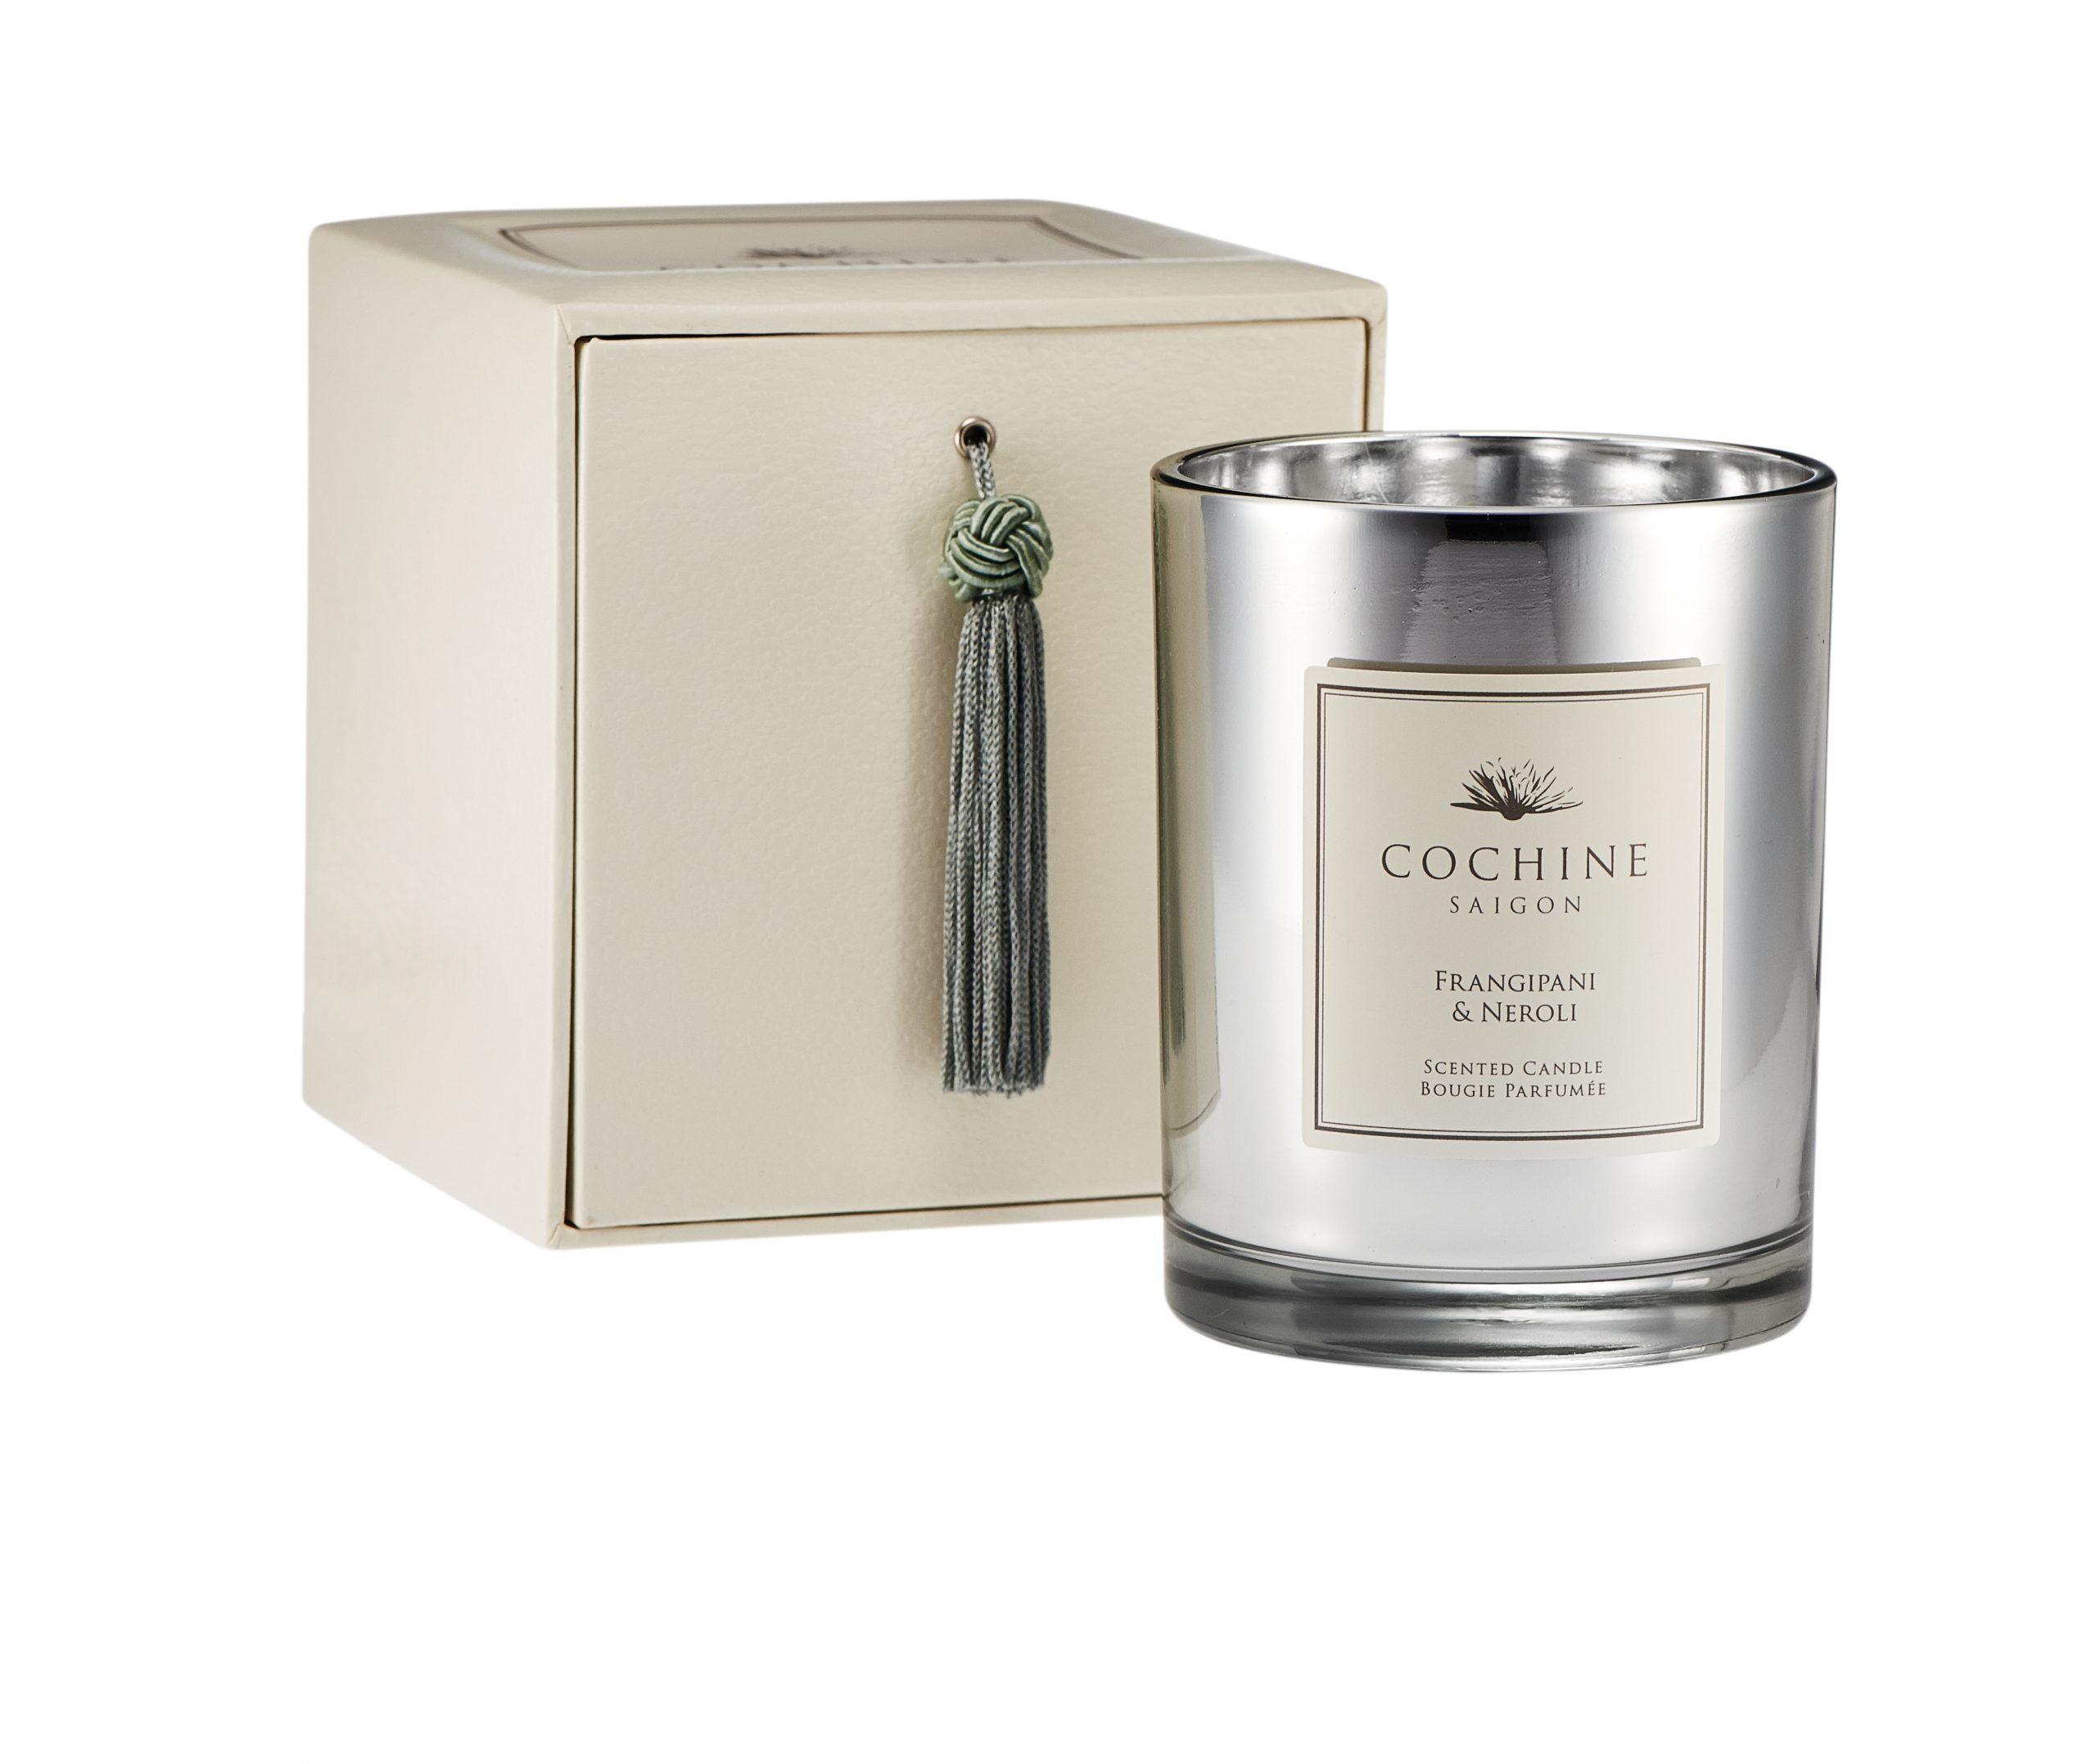 Cochine candle